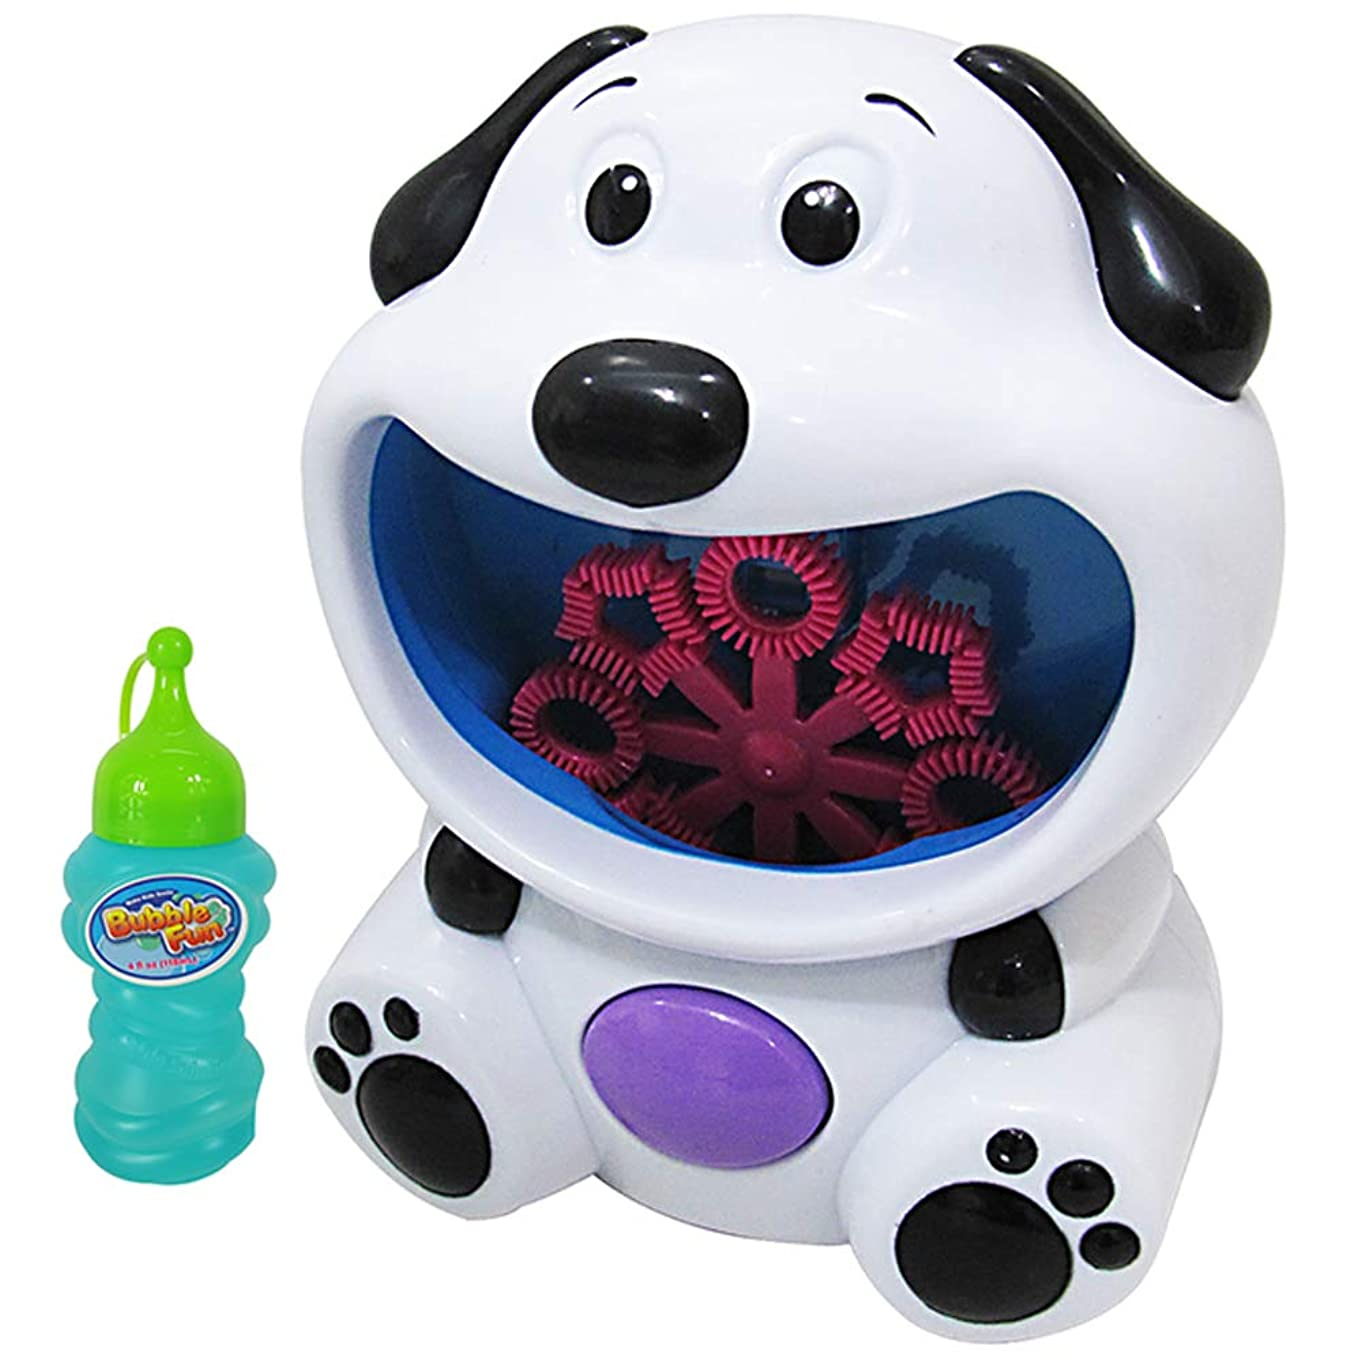 WisToyz Bubble Machine Baby Bath Toys Bubble Blower Hundreds of Bubbles per Minute,Bubble Machine for Kids Lovely 3D Dog Shaped Automatic Bubble Maker Machine 4 AA Batteries Needed (not Included)